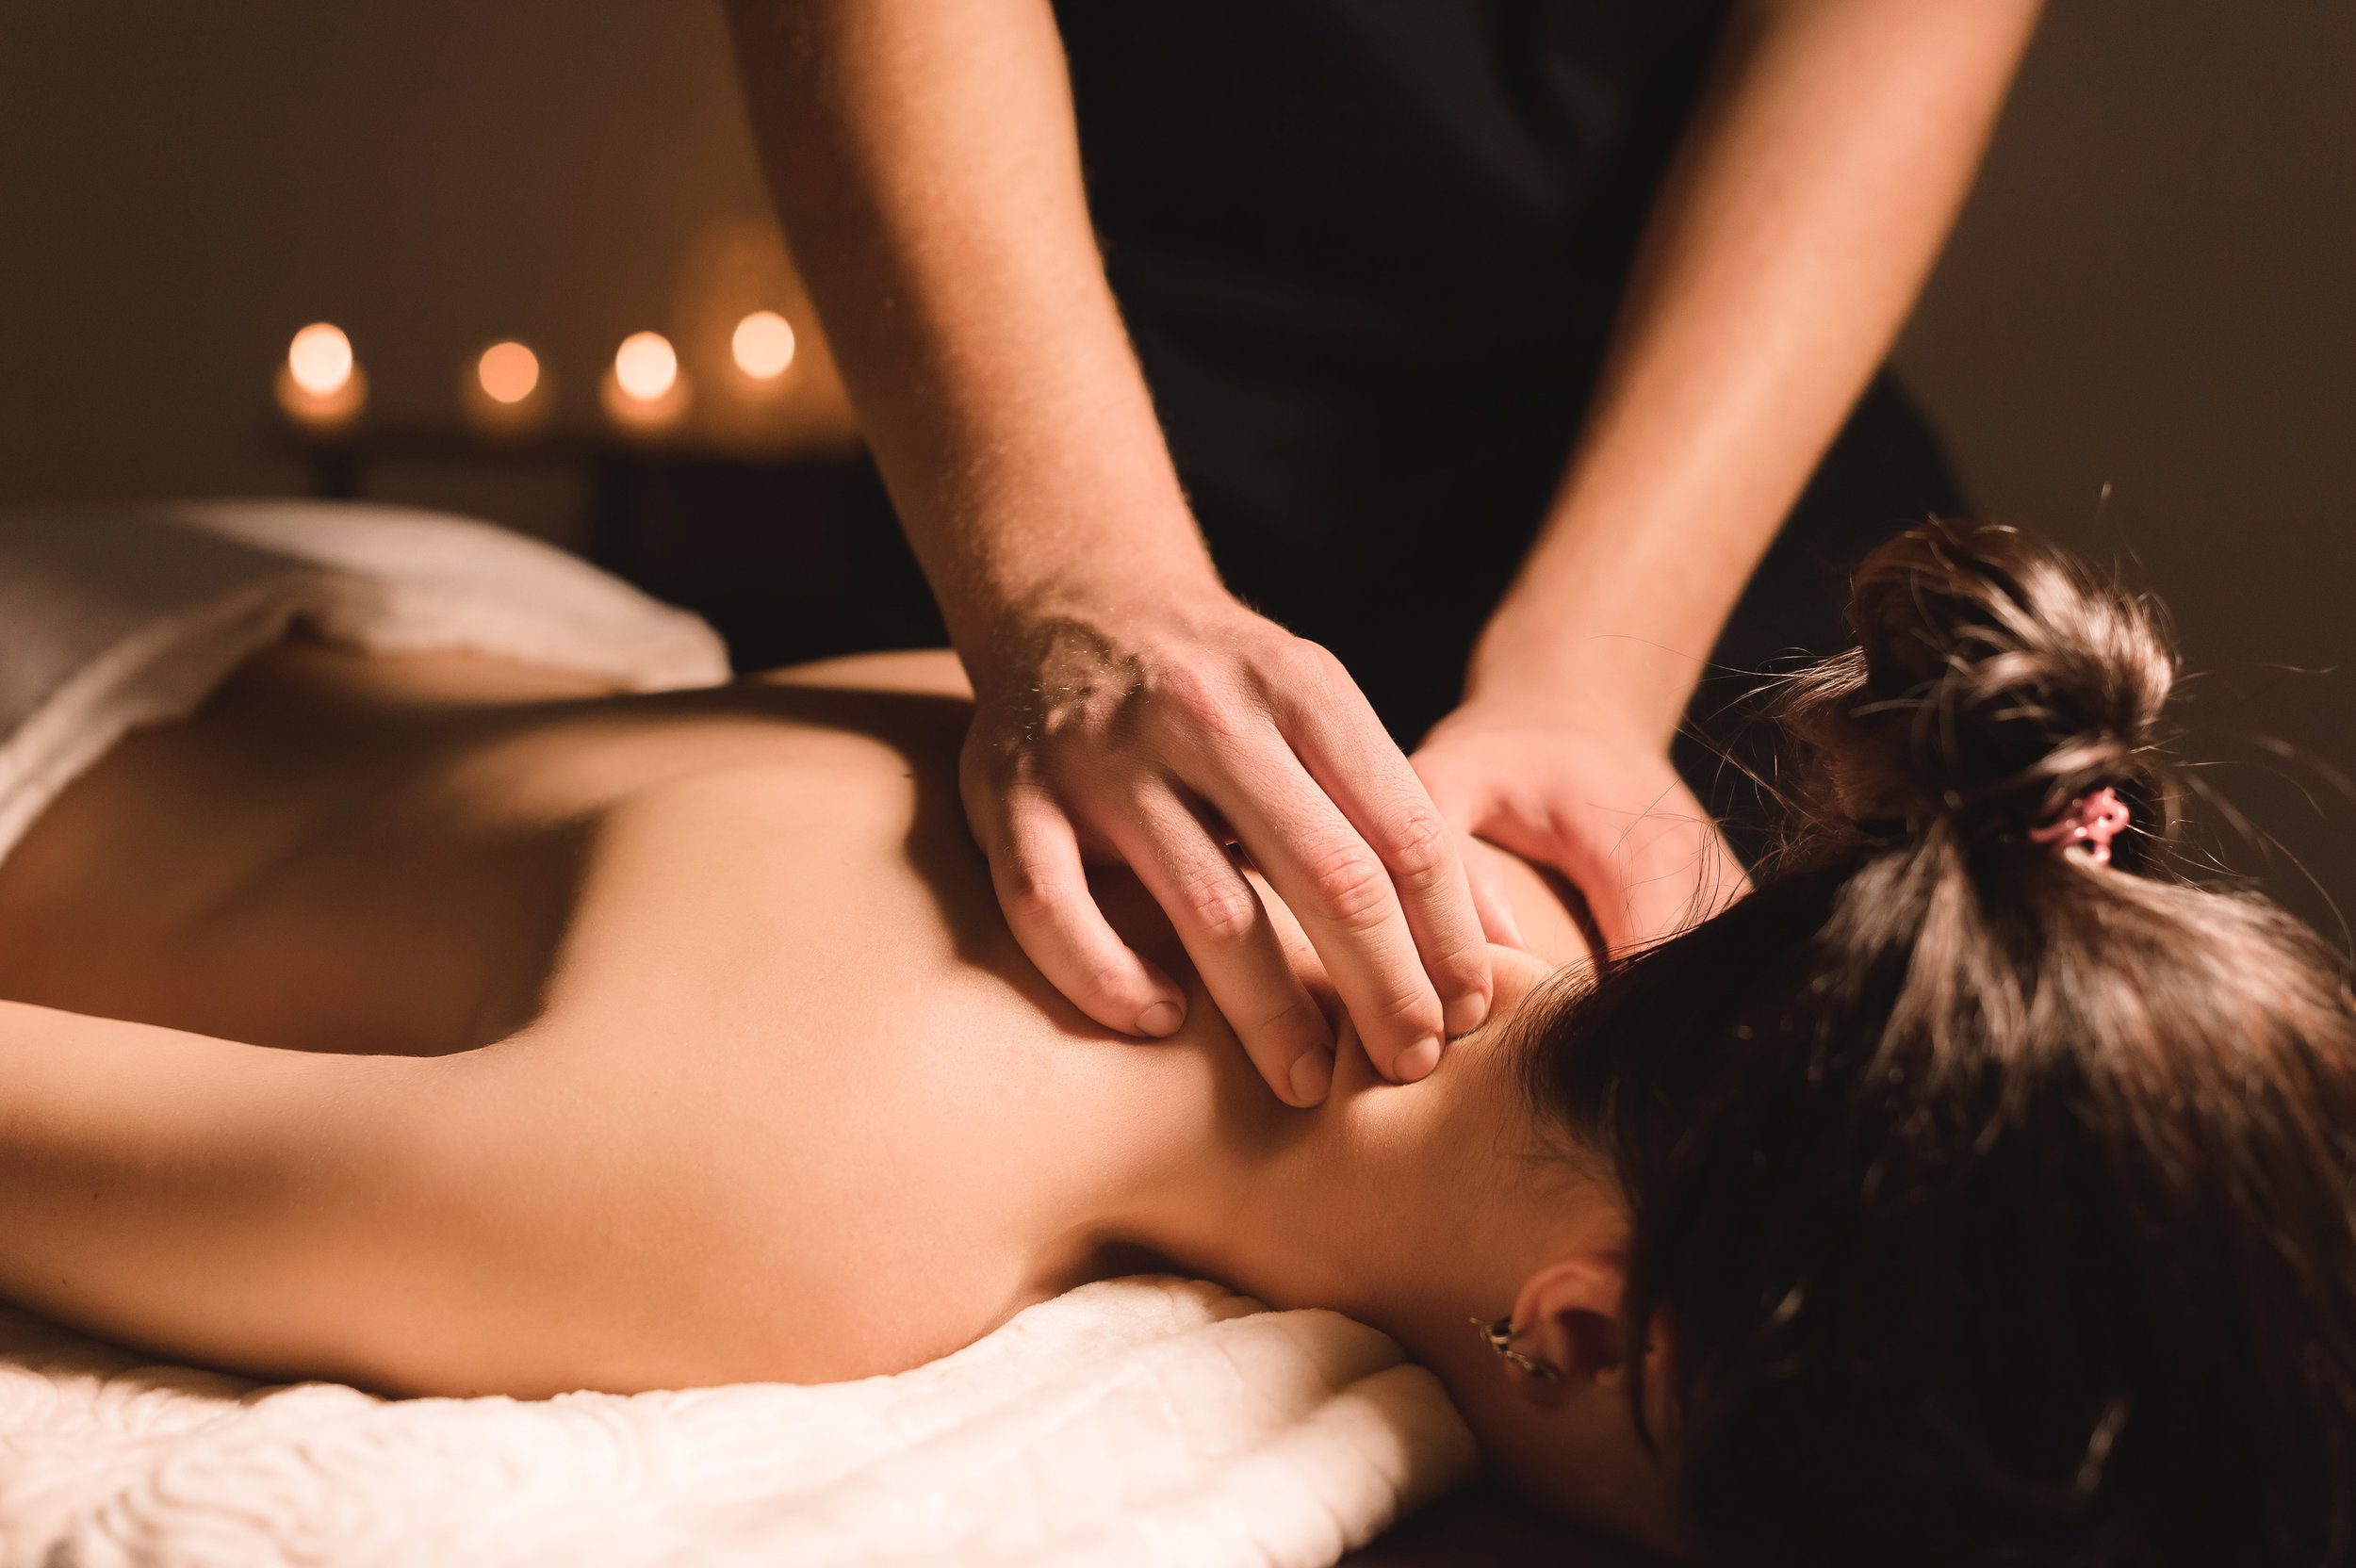 massage - Therapeutic Massage to Keep You in Motion